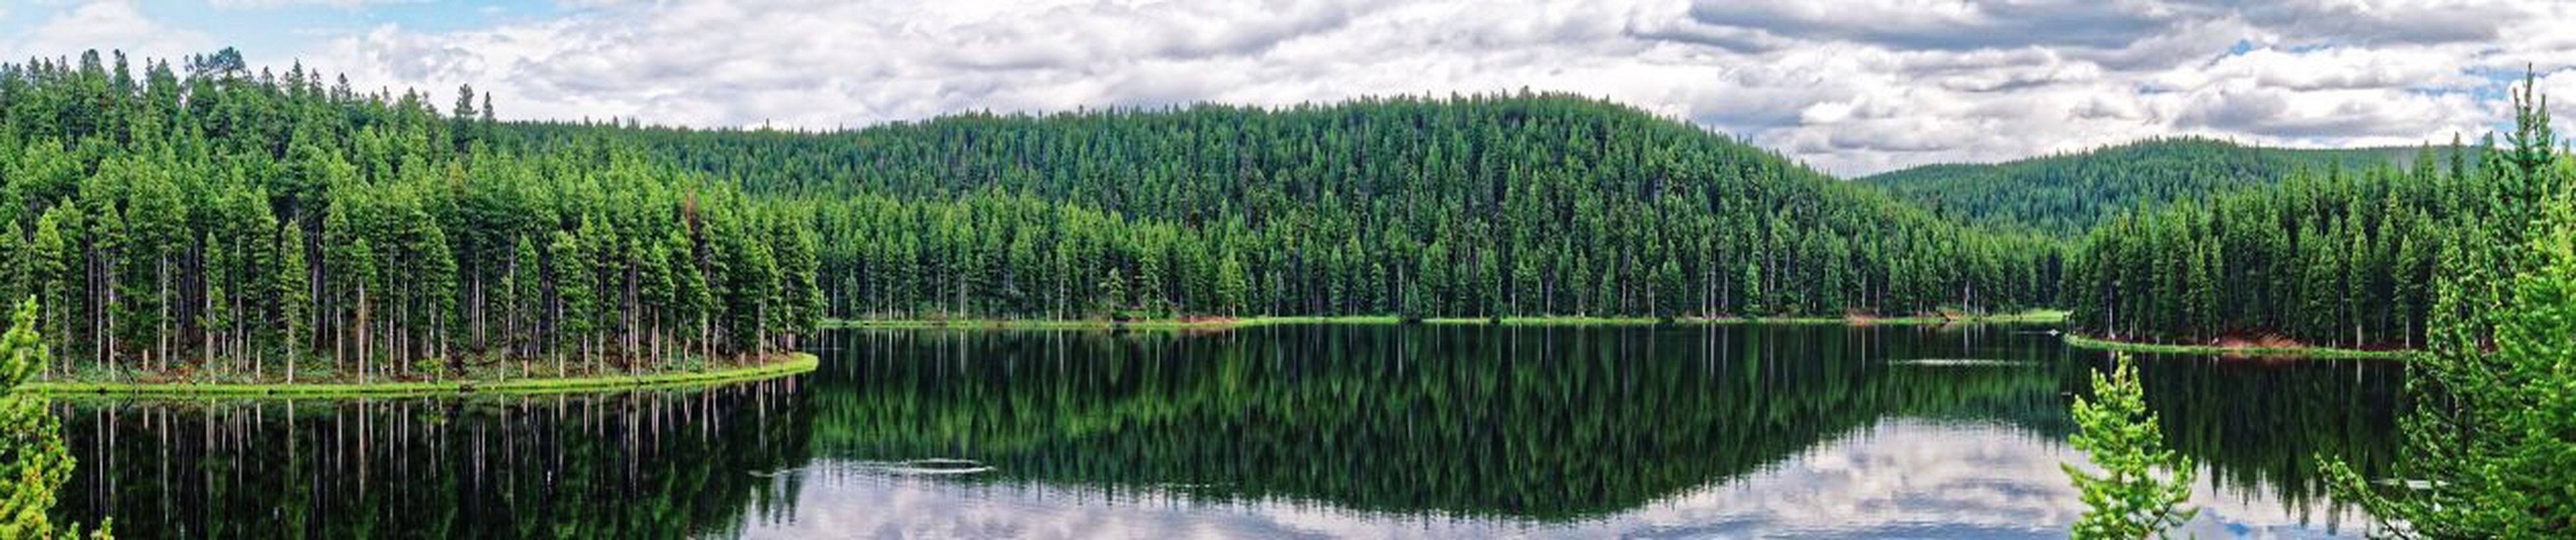 nature, water, reflection, lake, growth, tranquility, beauty in nature, no people, tranquil scene, day, outdoors, sky, scenics, grass